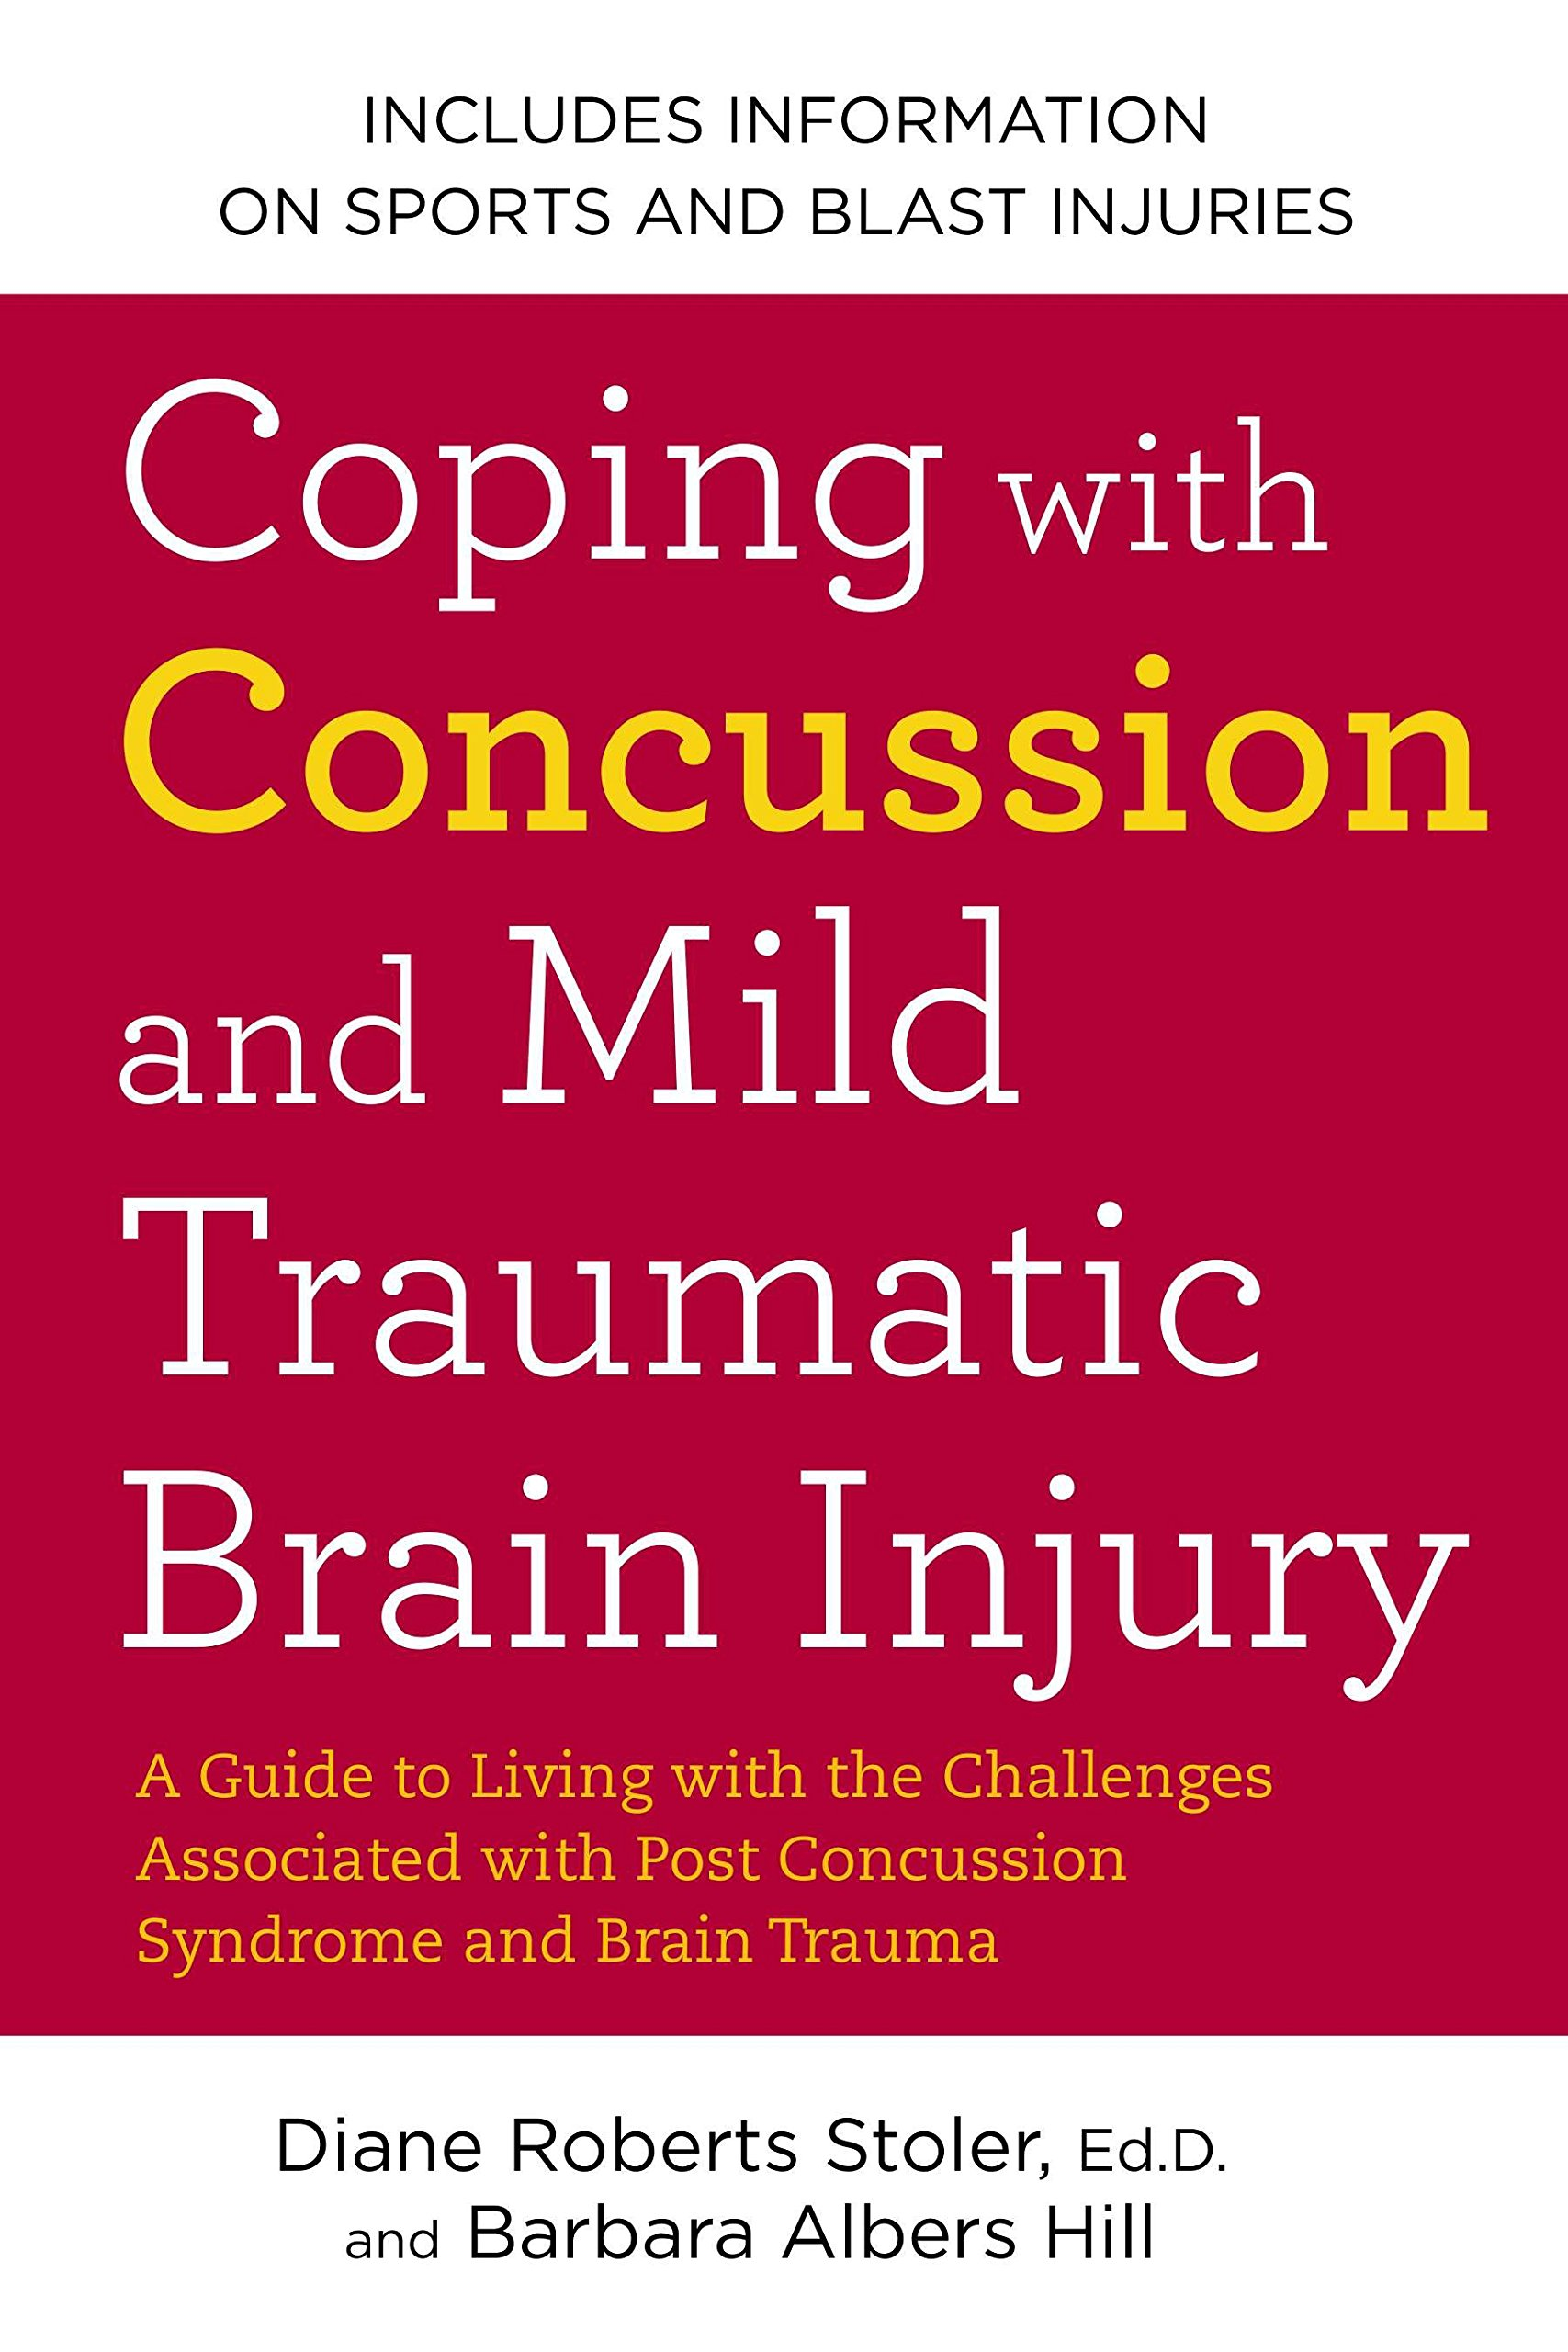 Coping with Concussion and Mild Traumatic Brain Injury: A Guide to Living with the Challenges Associated with Post Concussion Syndrome and Brain Trauma Paperback – November 5, 2013 Diane Roberts Stoler Barbara Albers Hill Avery 1583334769